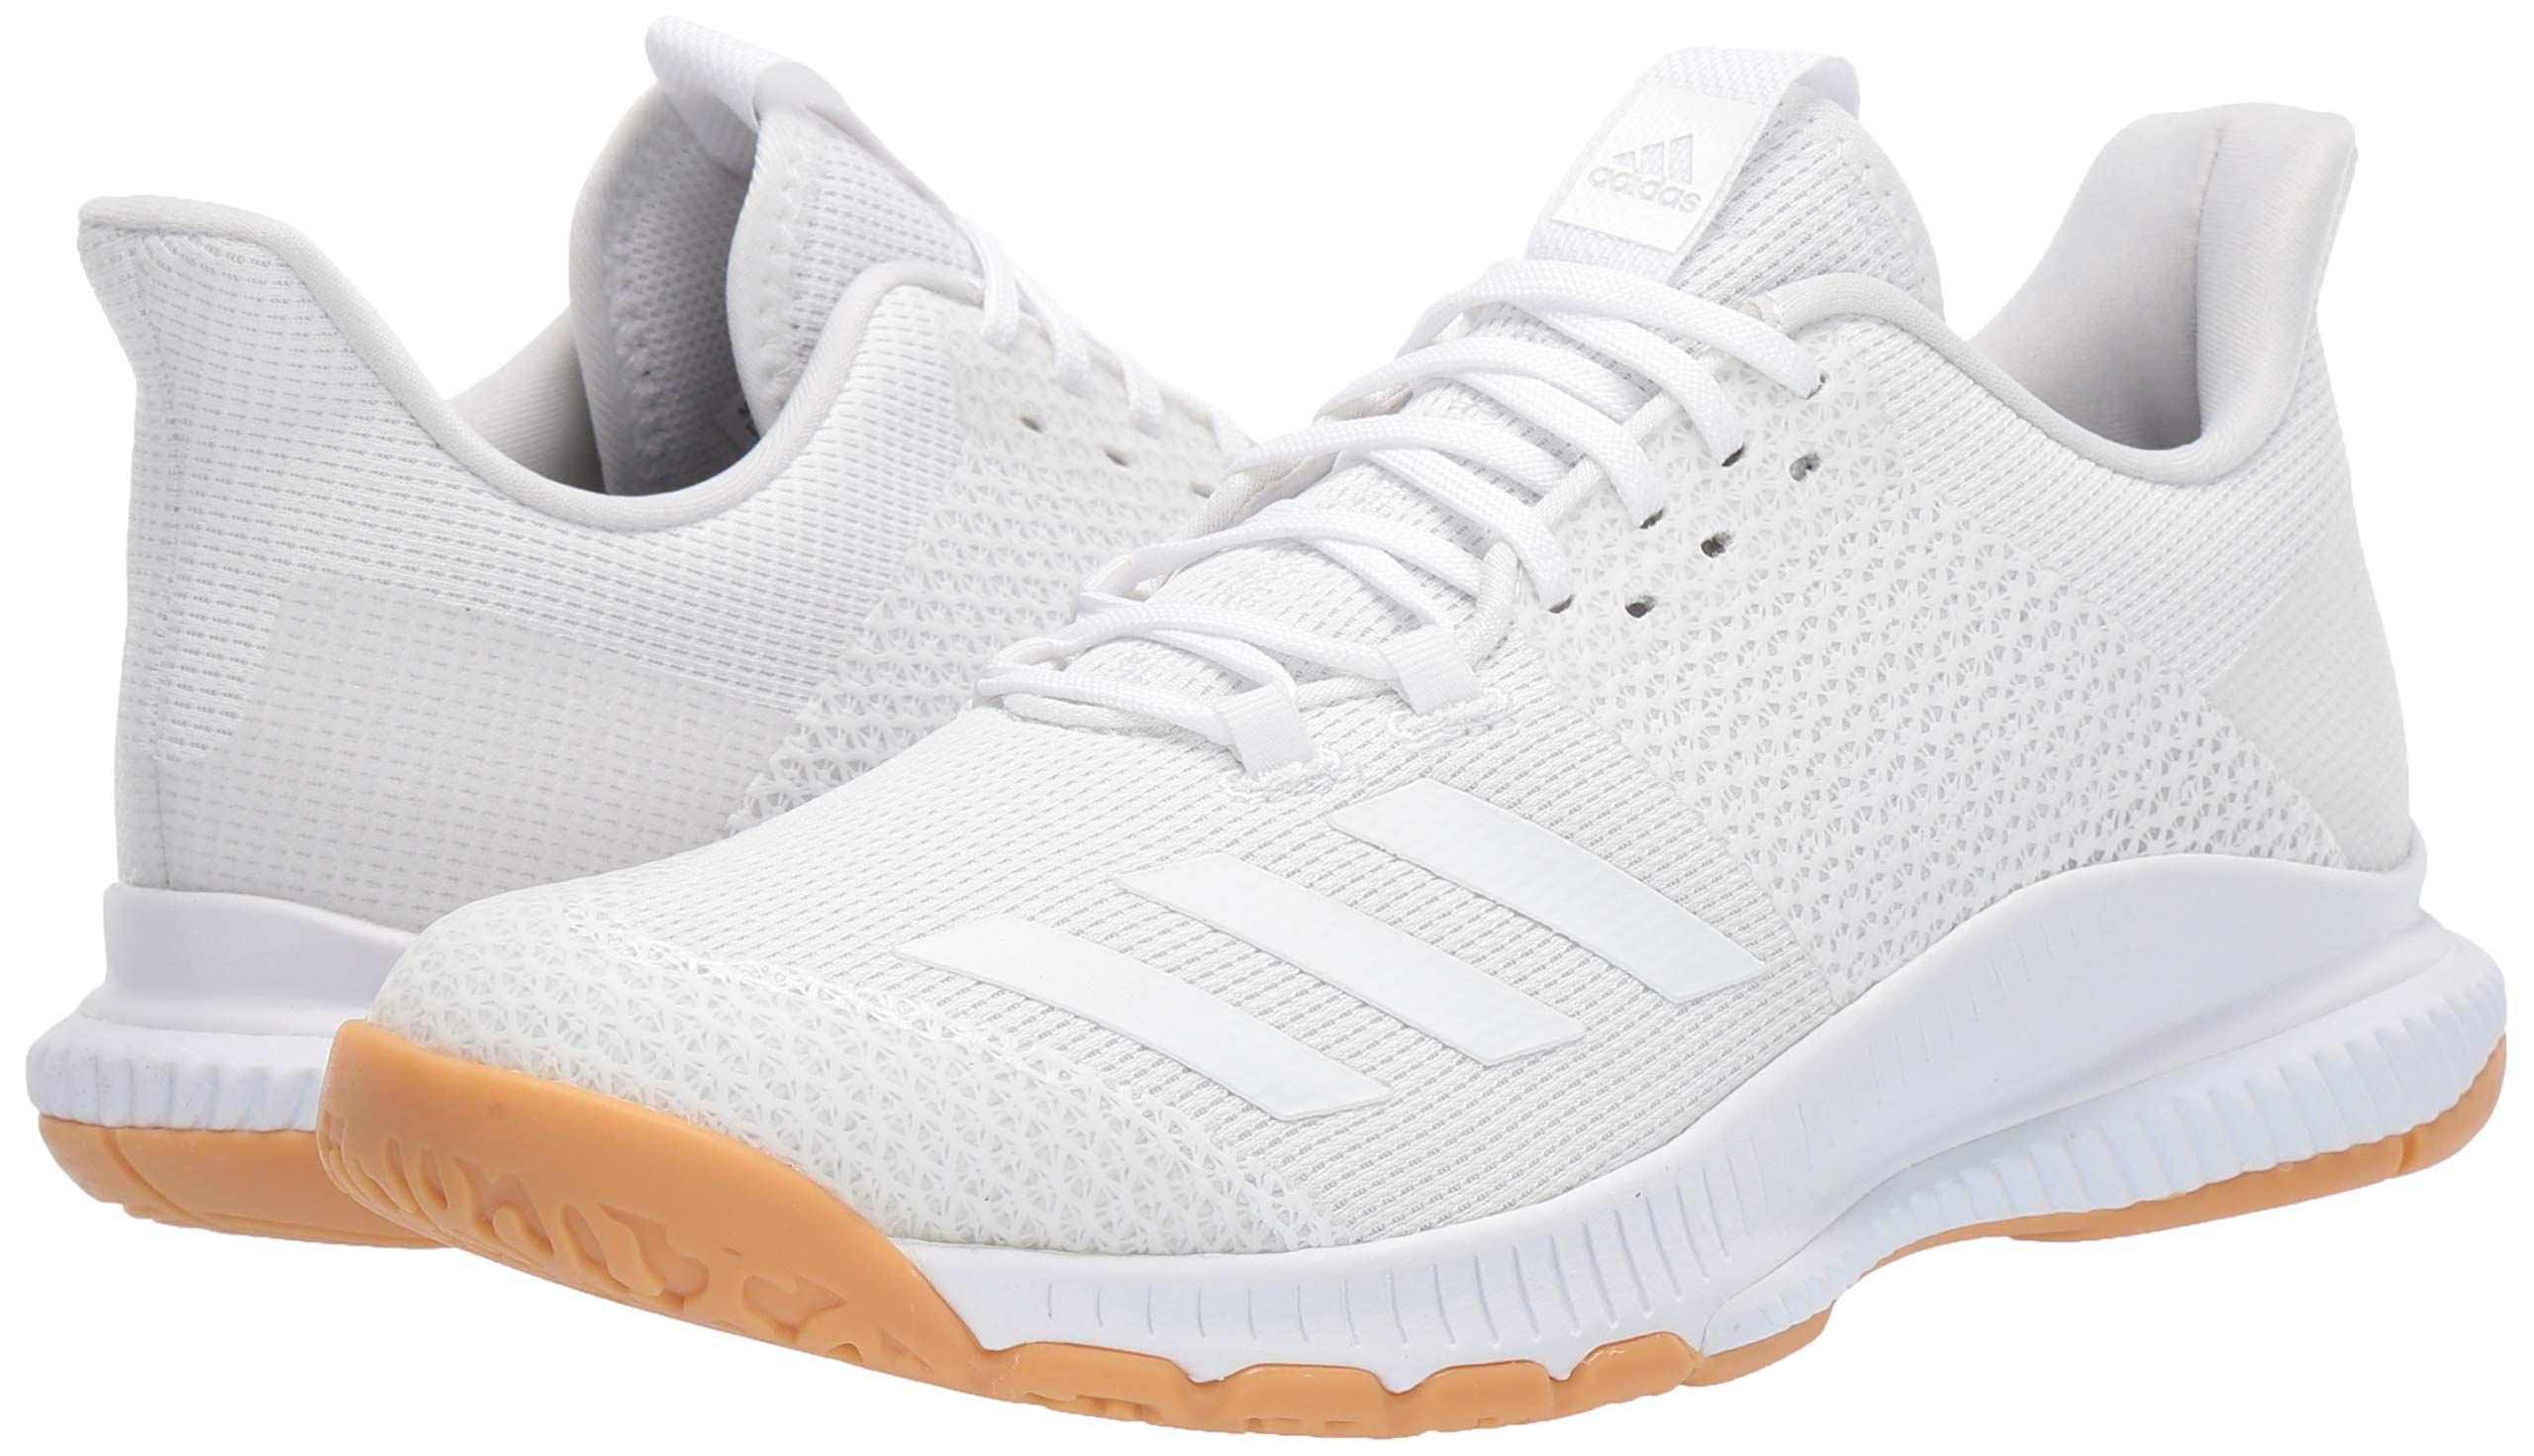 Adidas Women S Ligra 6 Volleyball Shoes In 2020 Volleyball Shoes Adidas Women Women Shoes